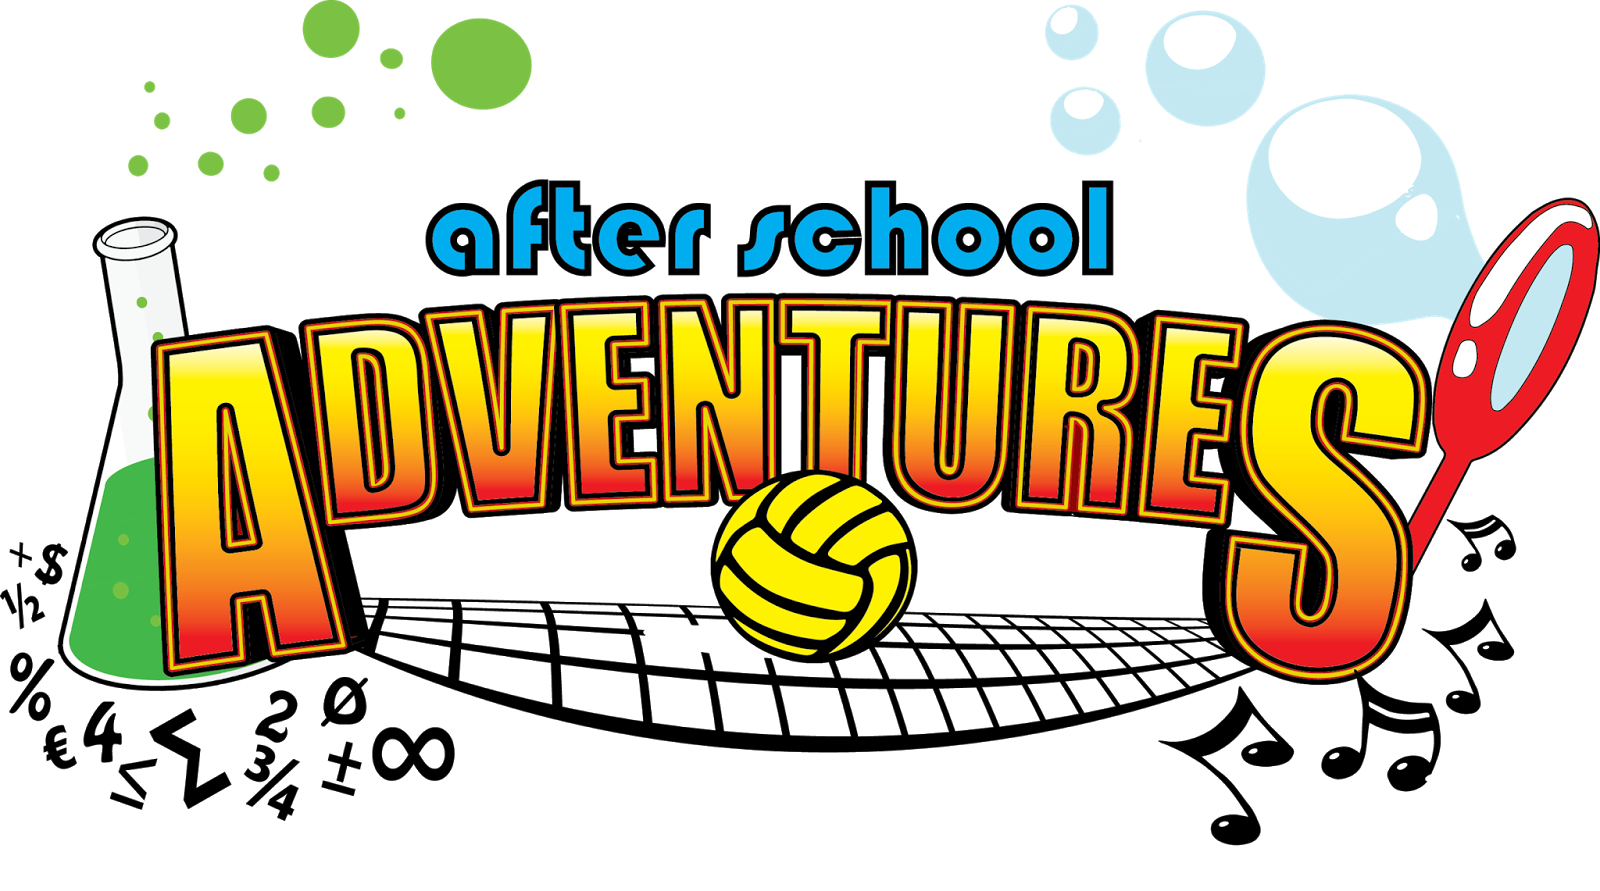 Lake Carolina Elementary Communigator: After School Activites